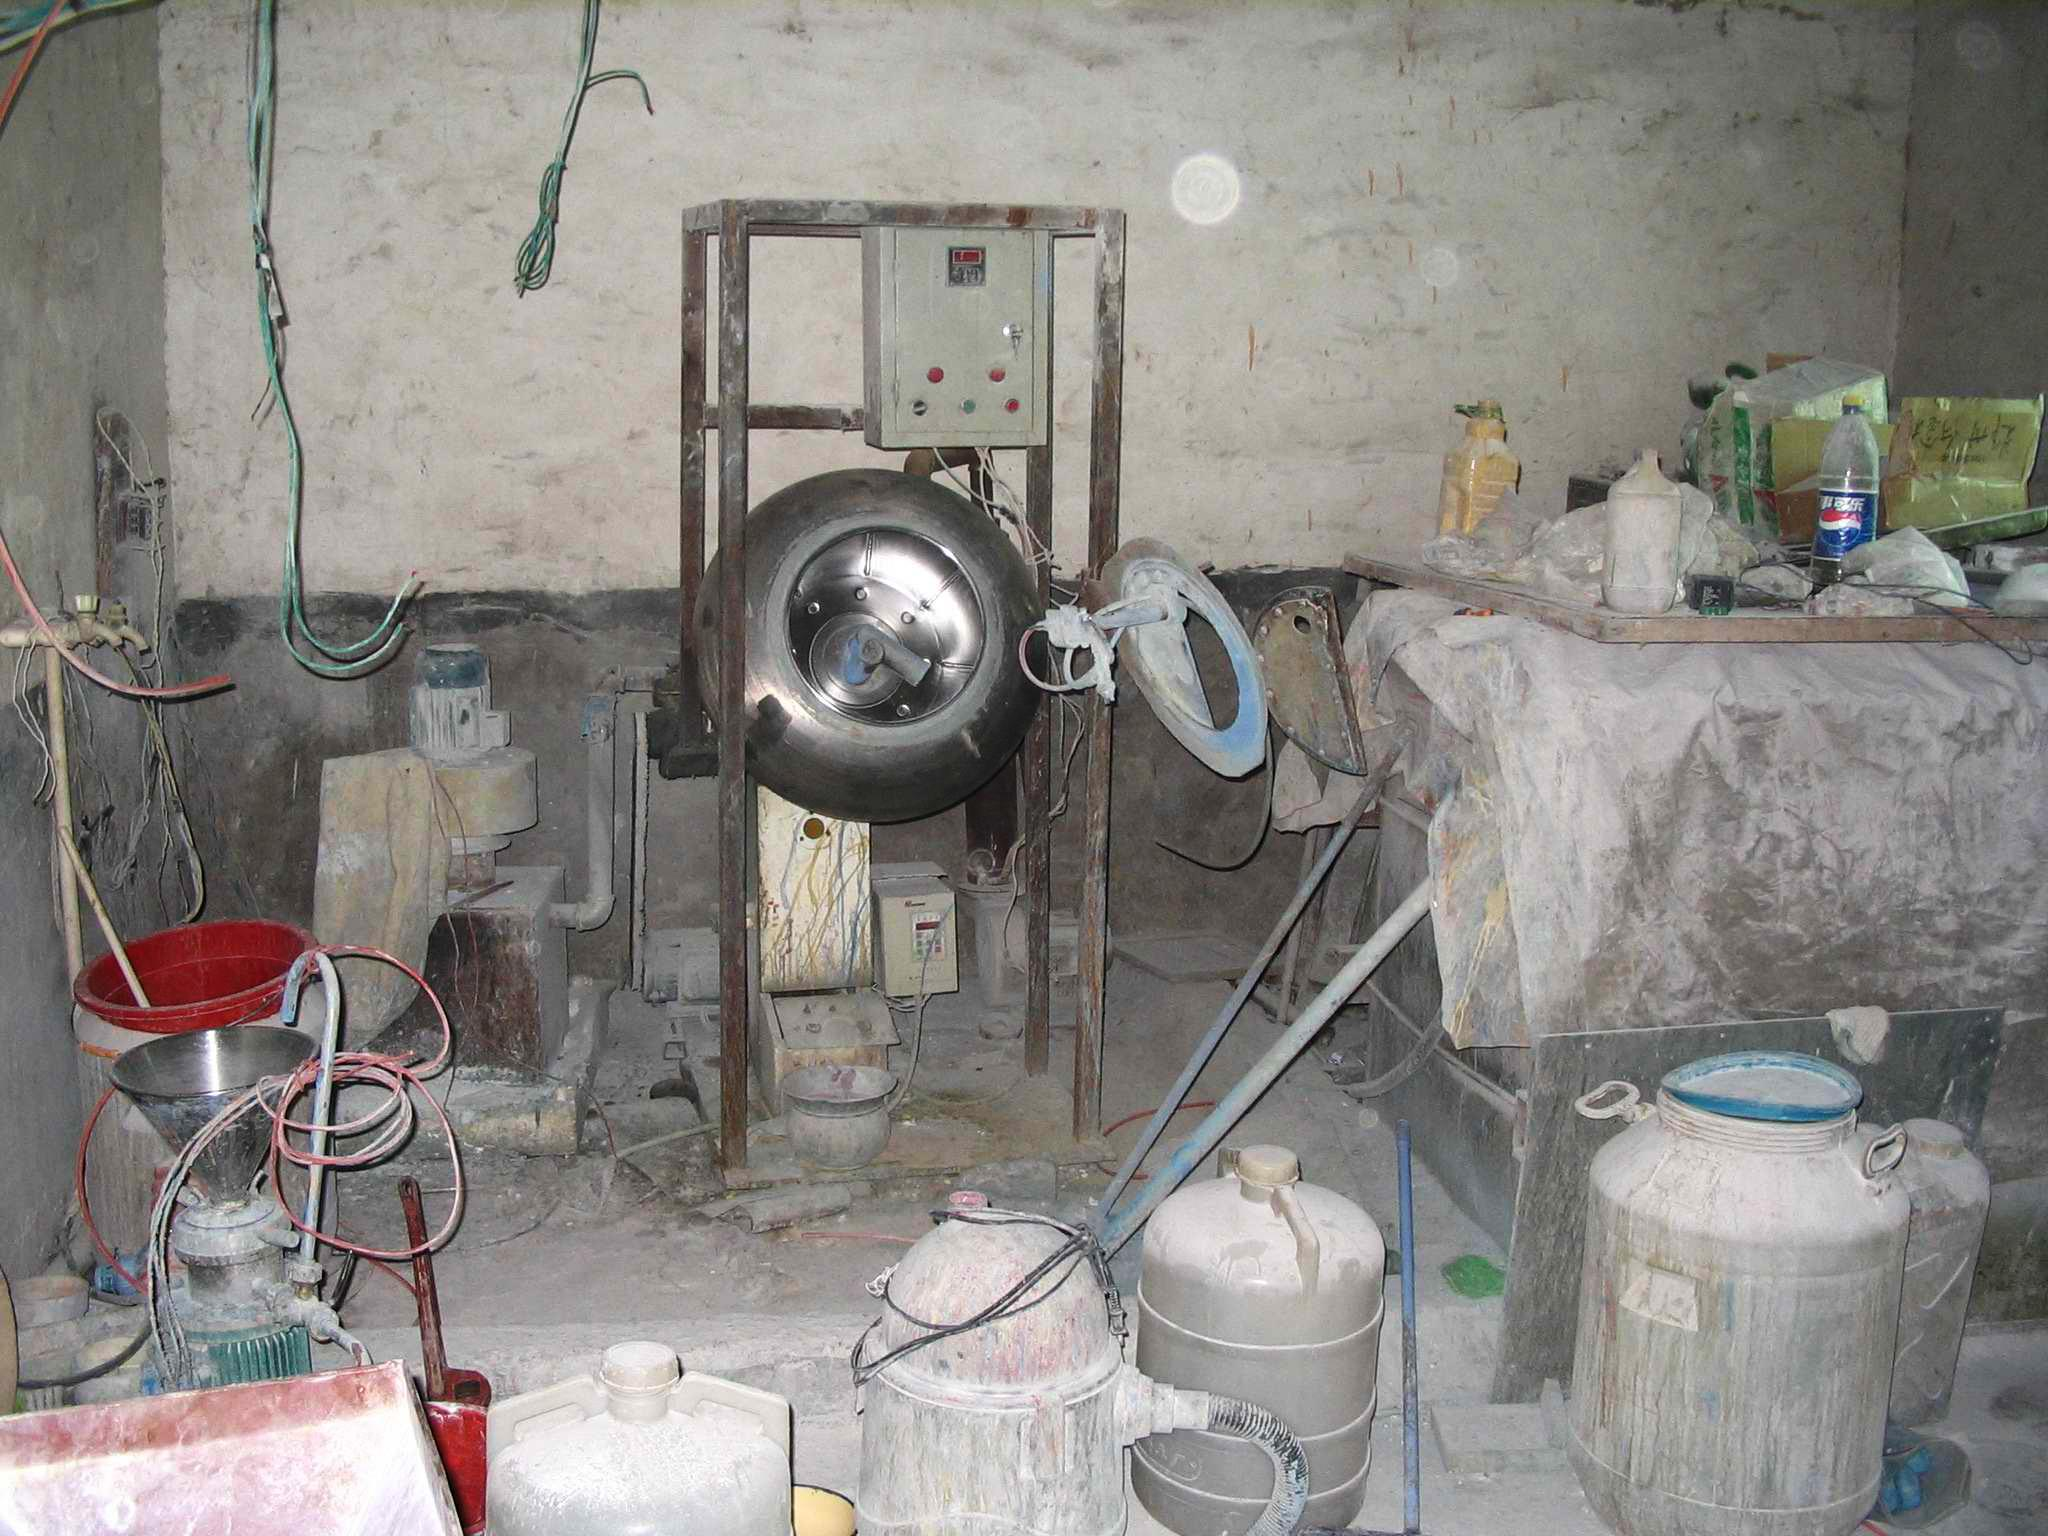 """This September 2005 photo provided by Pfizer shows an illegal pharmaceutical """"factory"""" in Henan Province, China, during a raid where authorities seized 10 lines of manufacturing equipment and counterfeit medicines valued at $4.3 million (USD), including about 440,000 counterfeit Viagra doses. In a first for the drug industry, Pfizer Inc. told The Associated Press on May 6, 2013, that it will sell erectile dysfunction pill Viagra directly to patients on its website. (AP Photo/Pfizer)"""